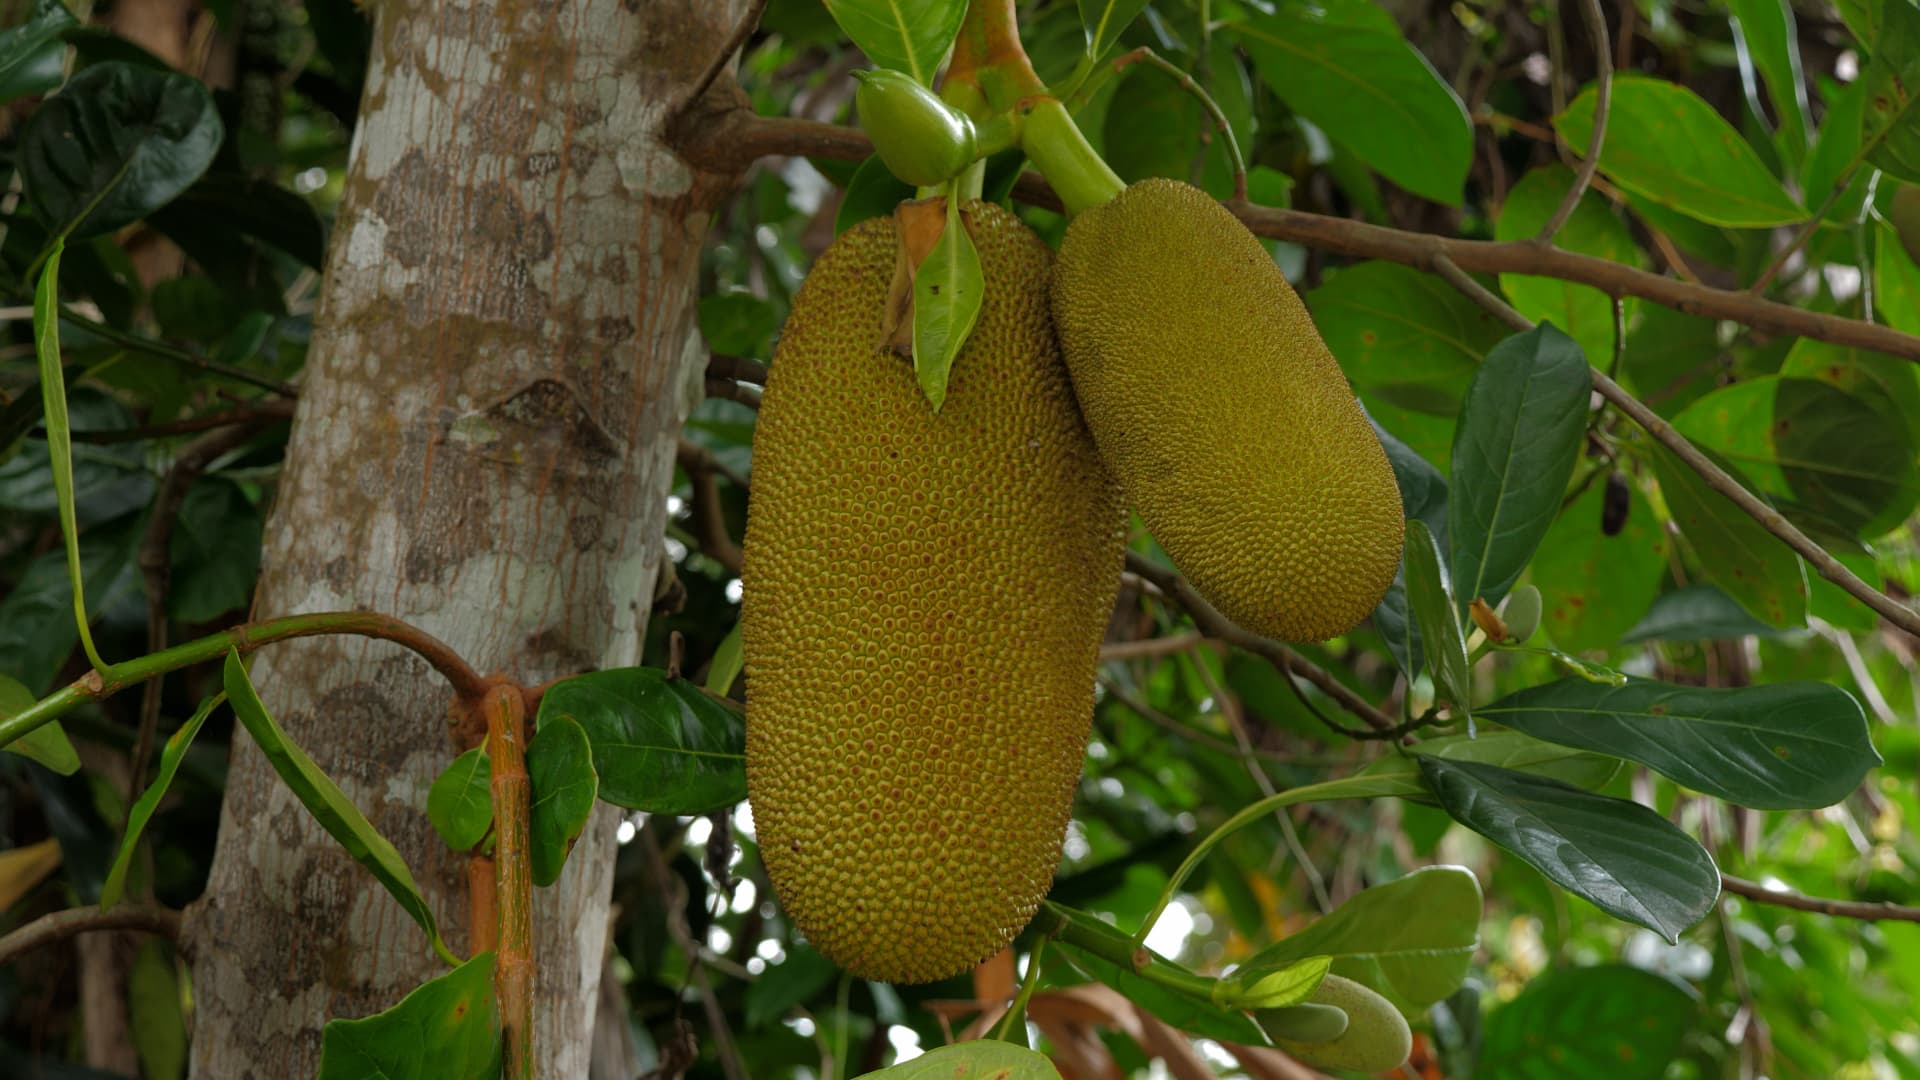 Jackfruit is commonly used in many South and Southeast Asian dishes.